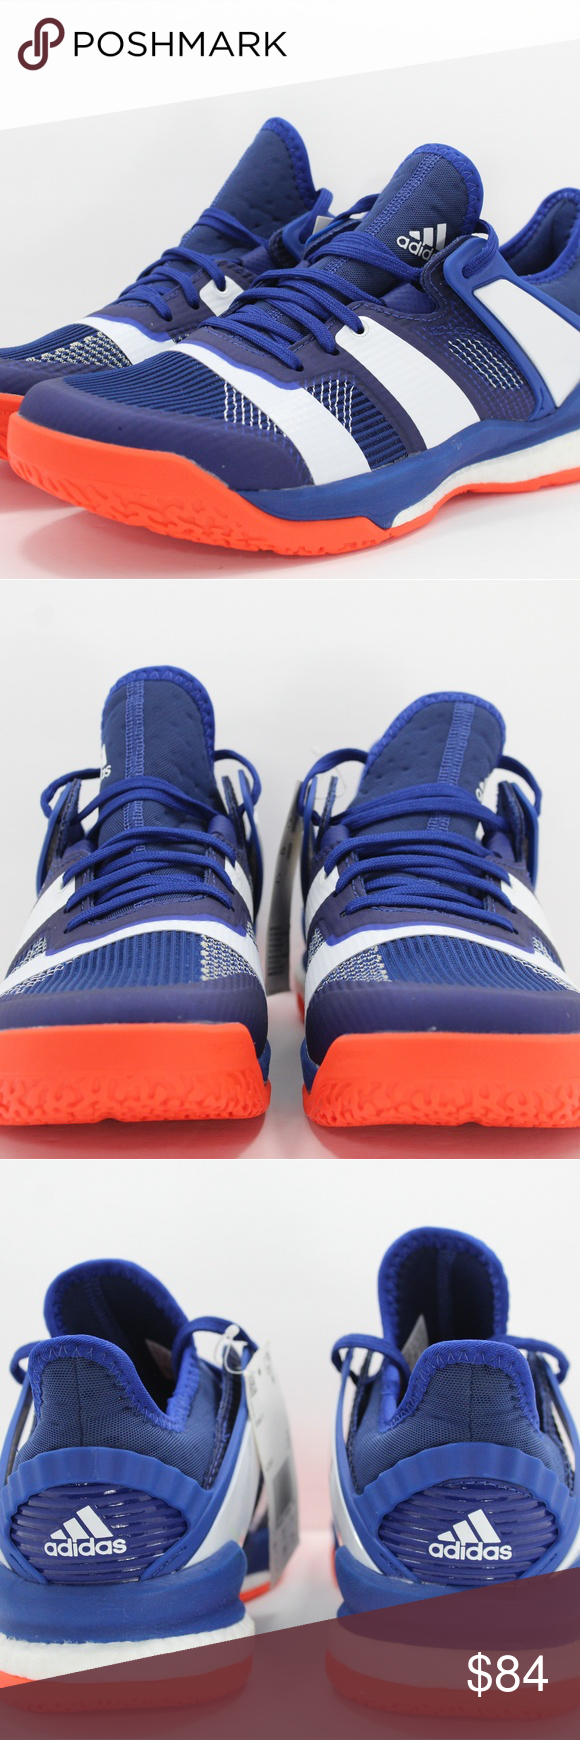 Adidas Stabil Boost Volleyball Shoes Men S Size 7 Volleyball Shoes Shoes Mens Adidas